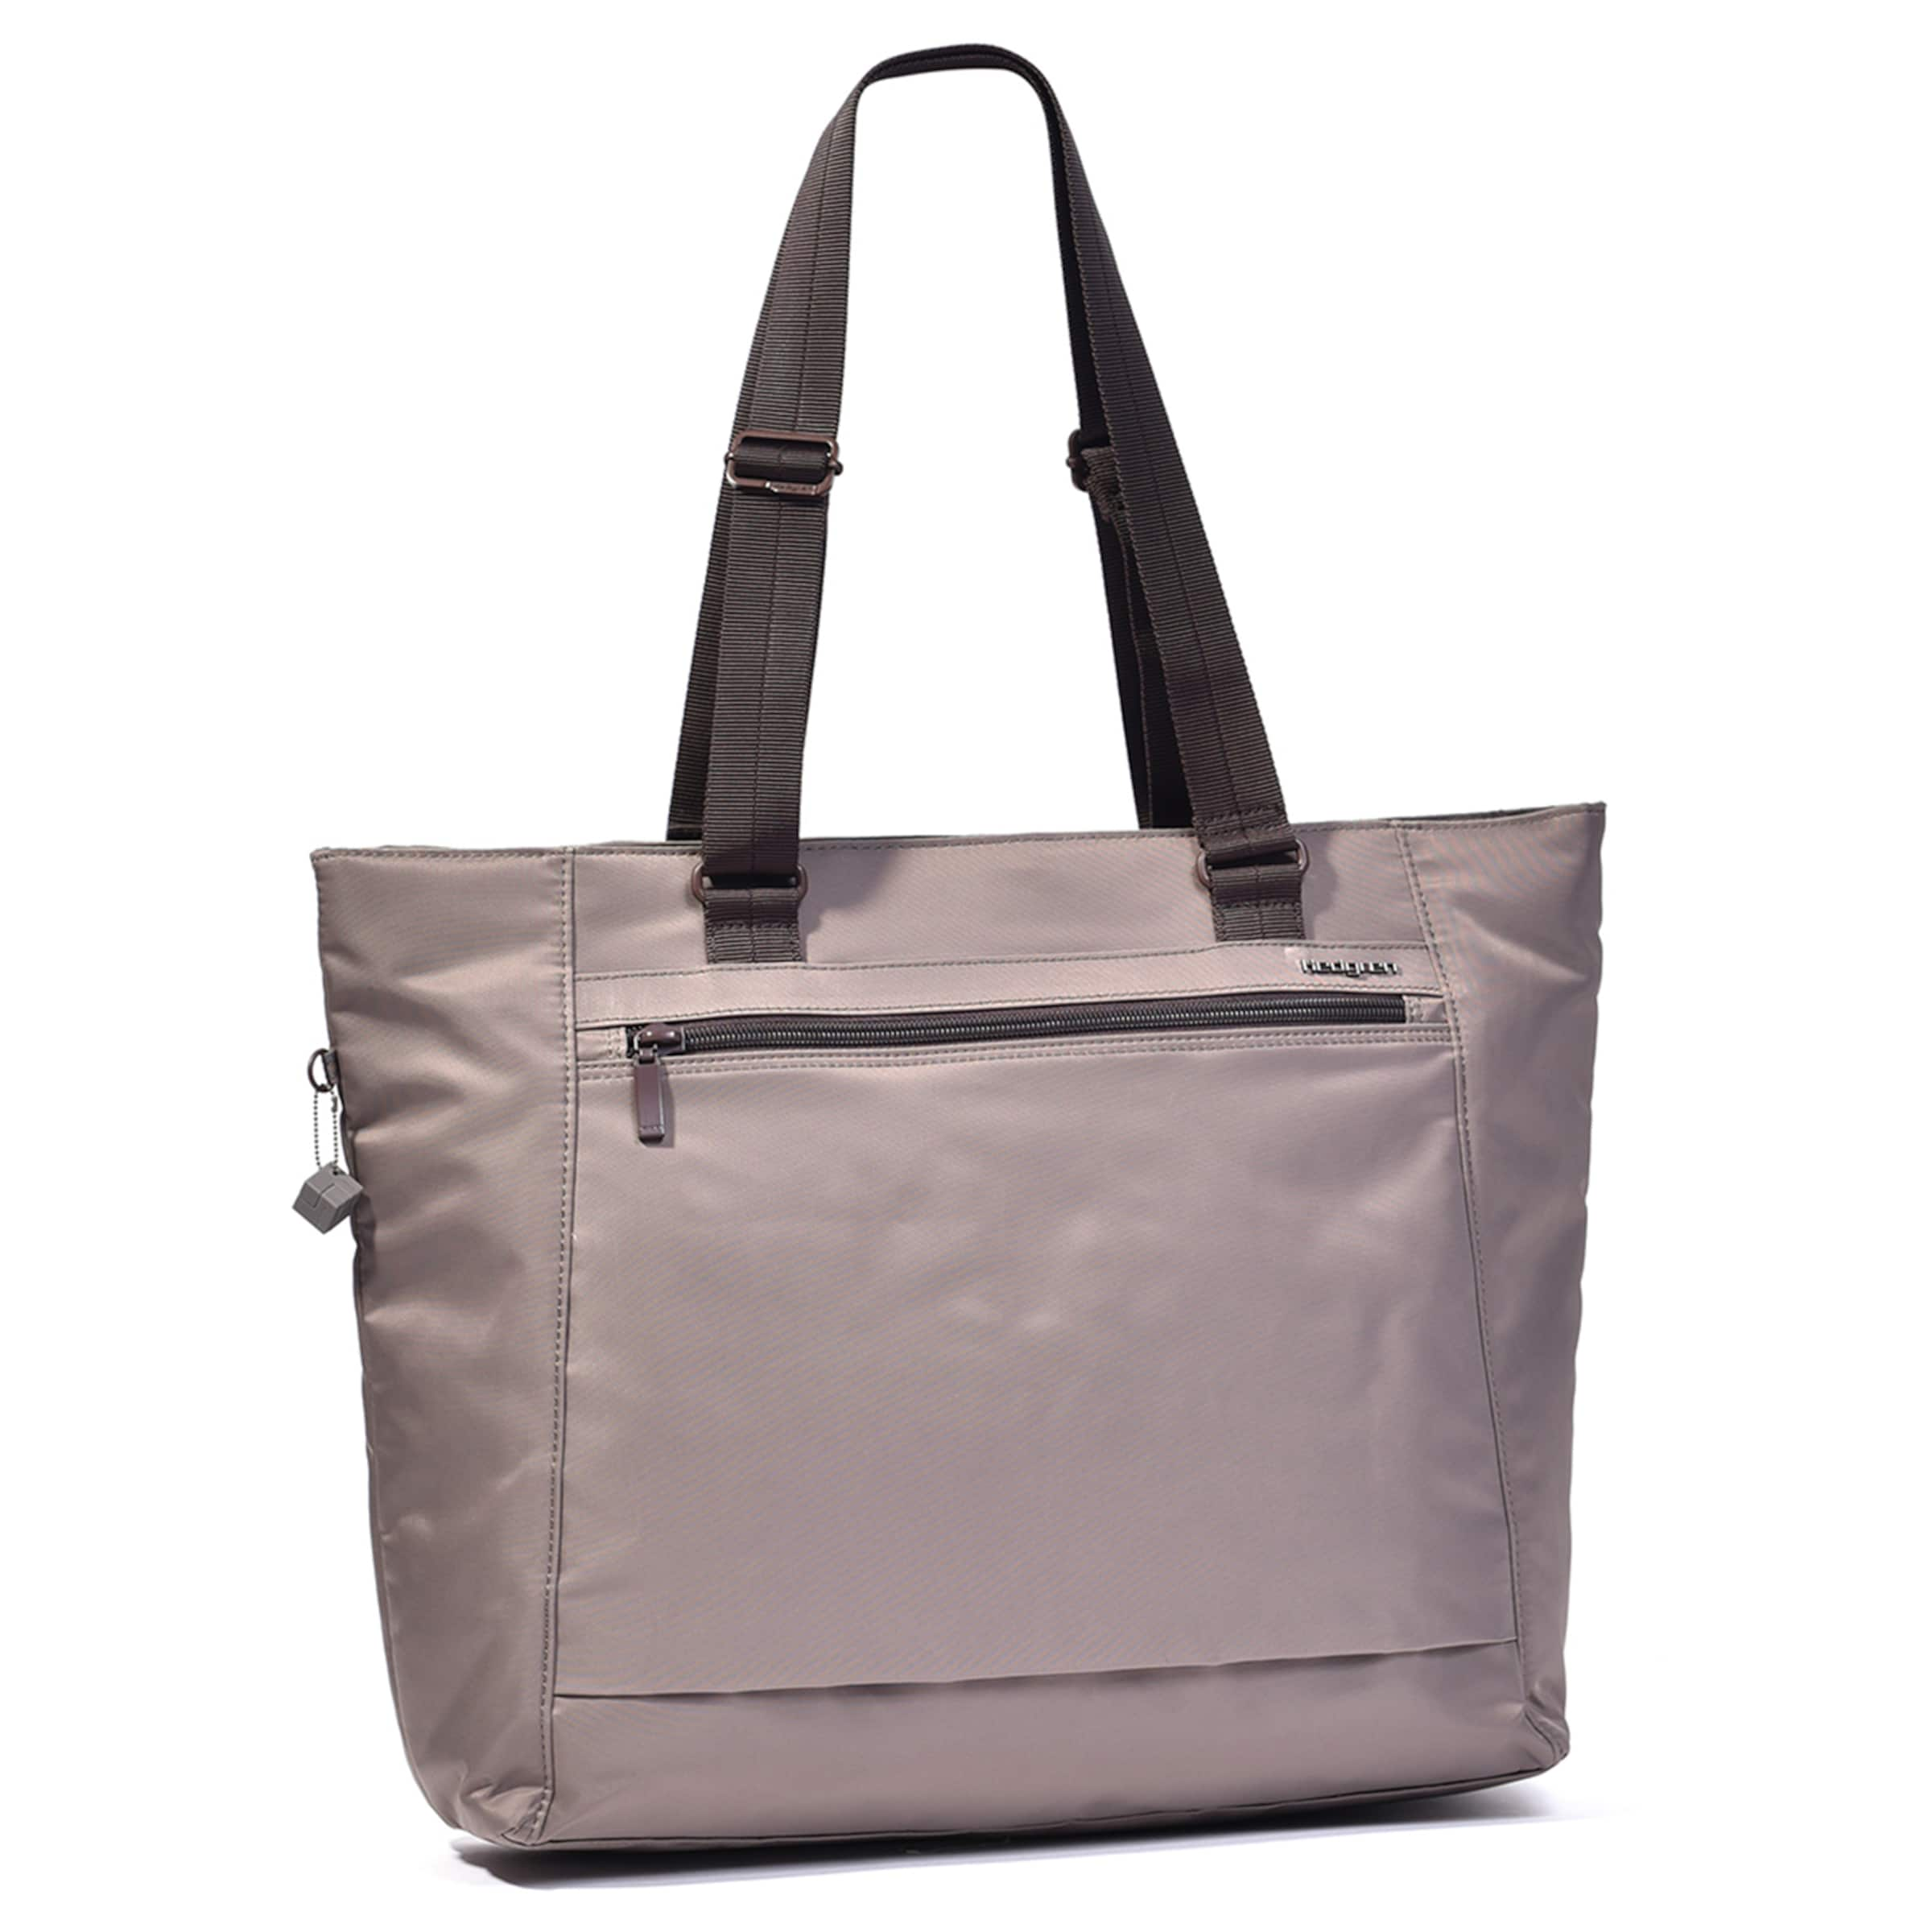 In In Hedgren Shopper Beige Beige Shopper 'elvira' Hedgren 'elvira' Hedgren qRj435LA